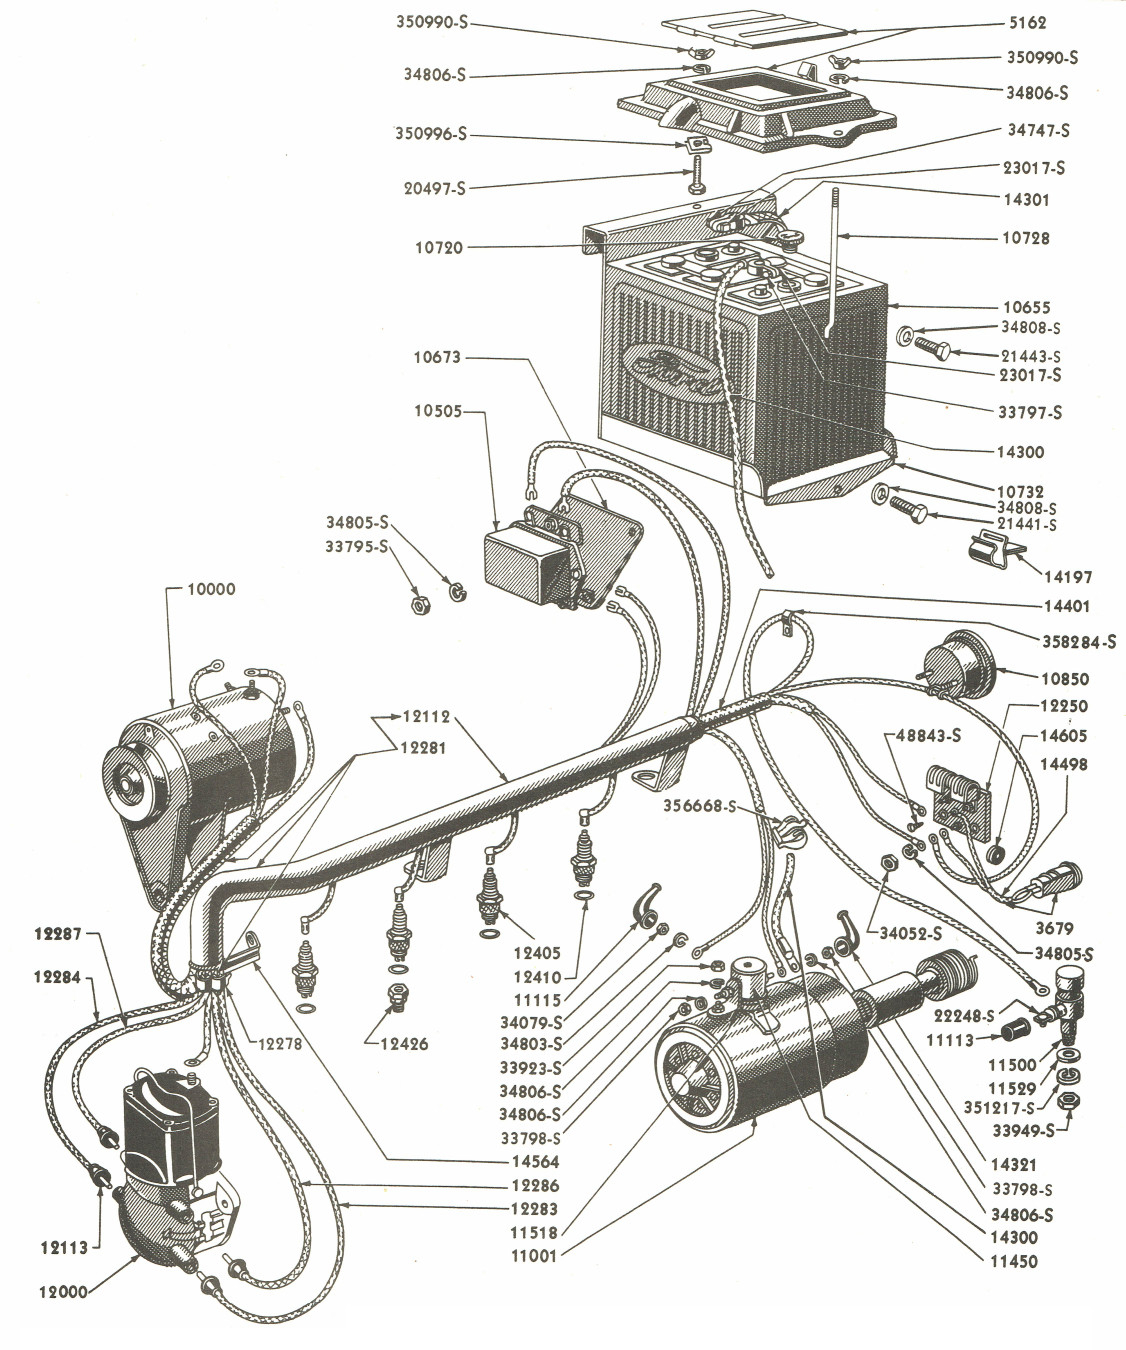 1941 Ford Wiring Diagram | Wiring Library - 9N Ford Tractor Wiring Diagram